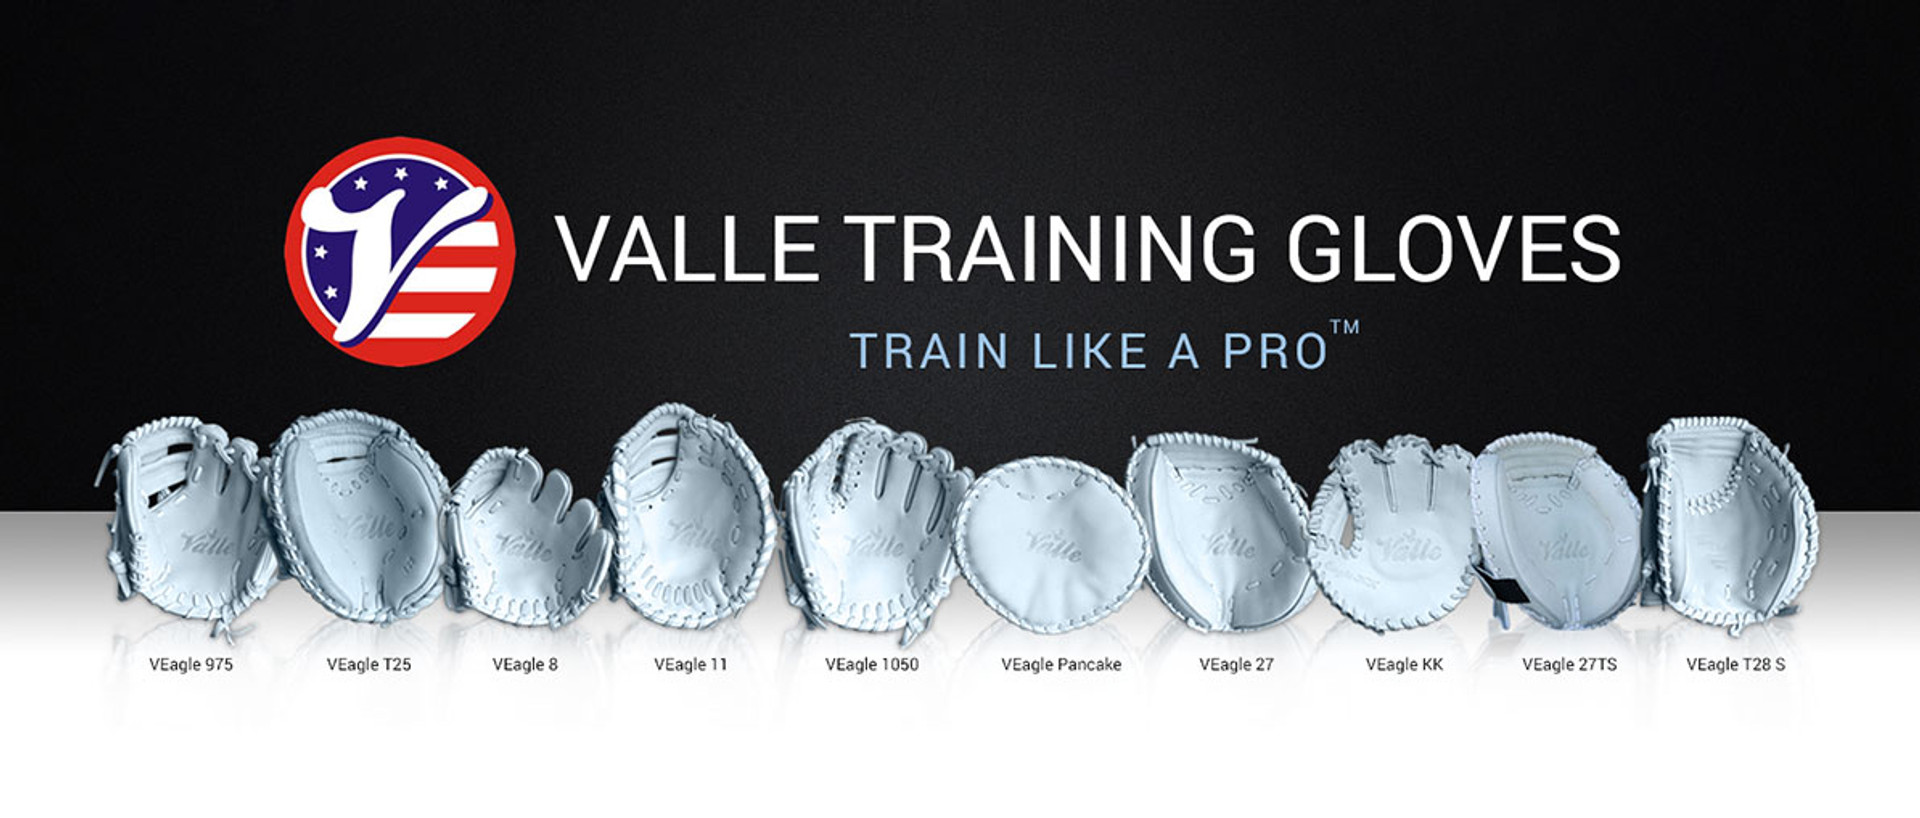 Valle Training Gloves in a row under the Valle logo and 'Train Like a Pro'